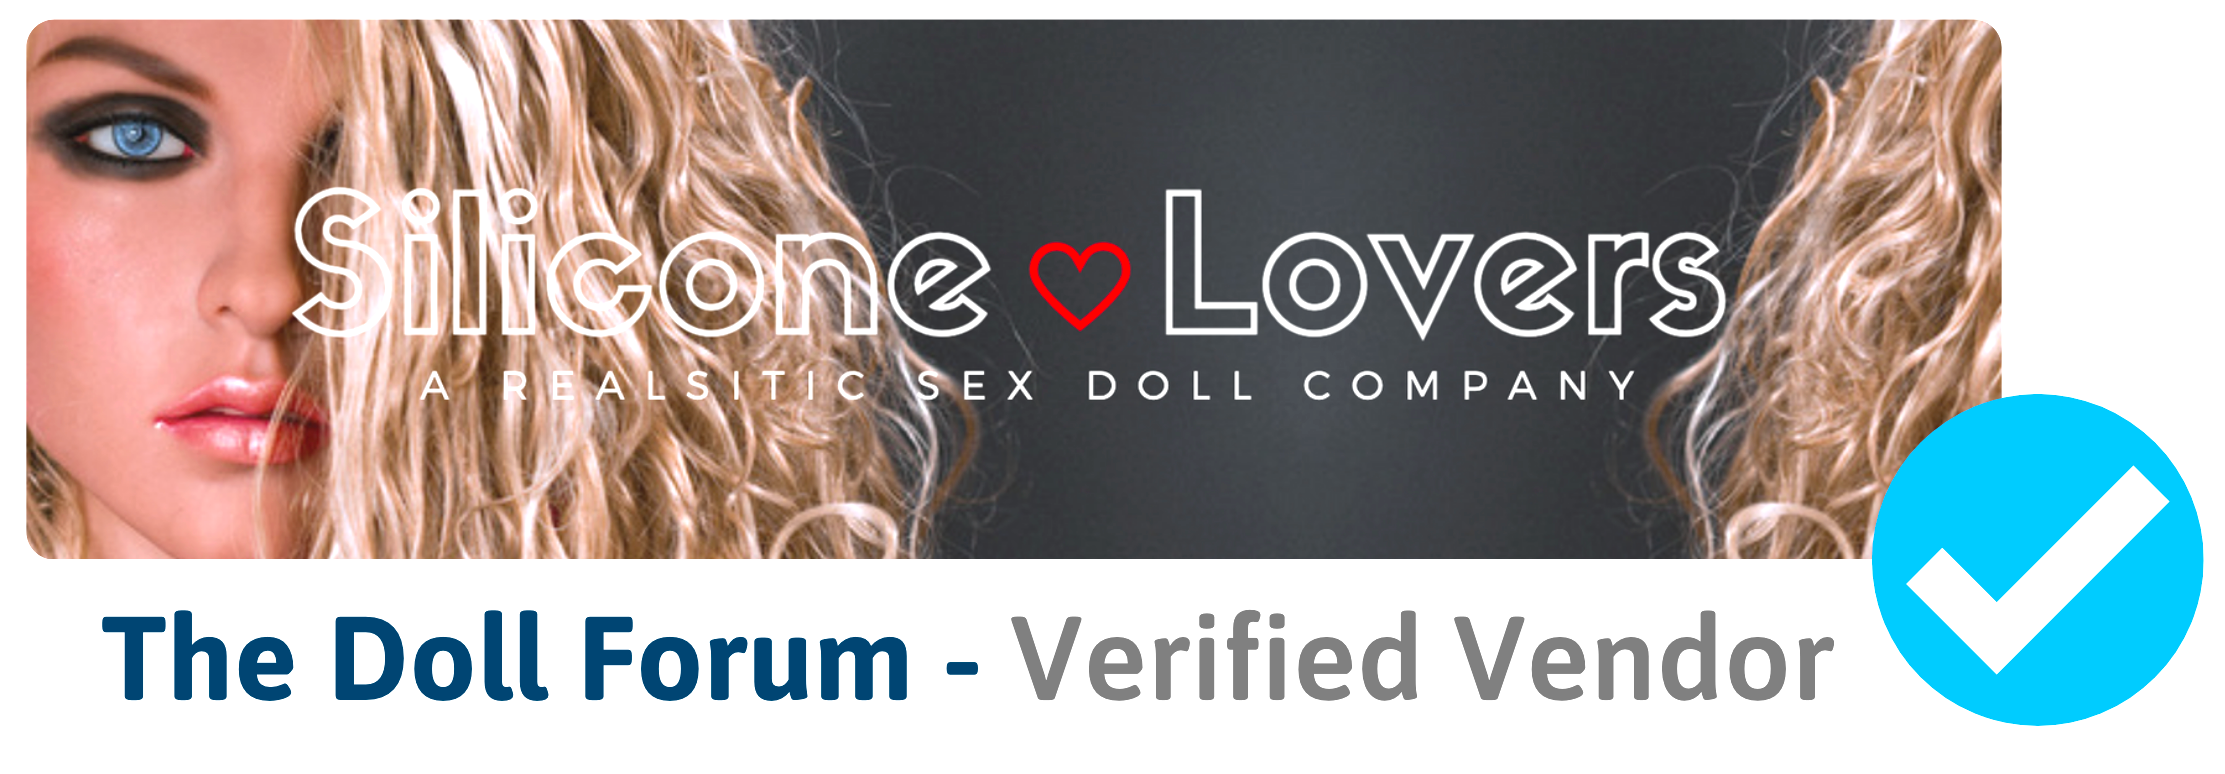 The Doll Forum Verified Vendor Silicone Lovers